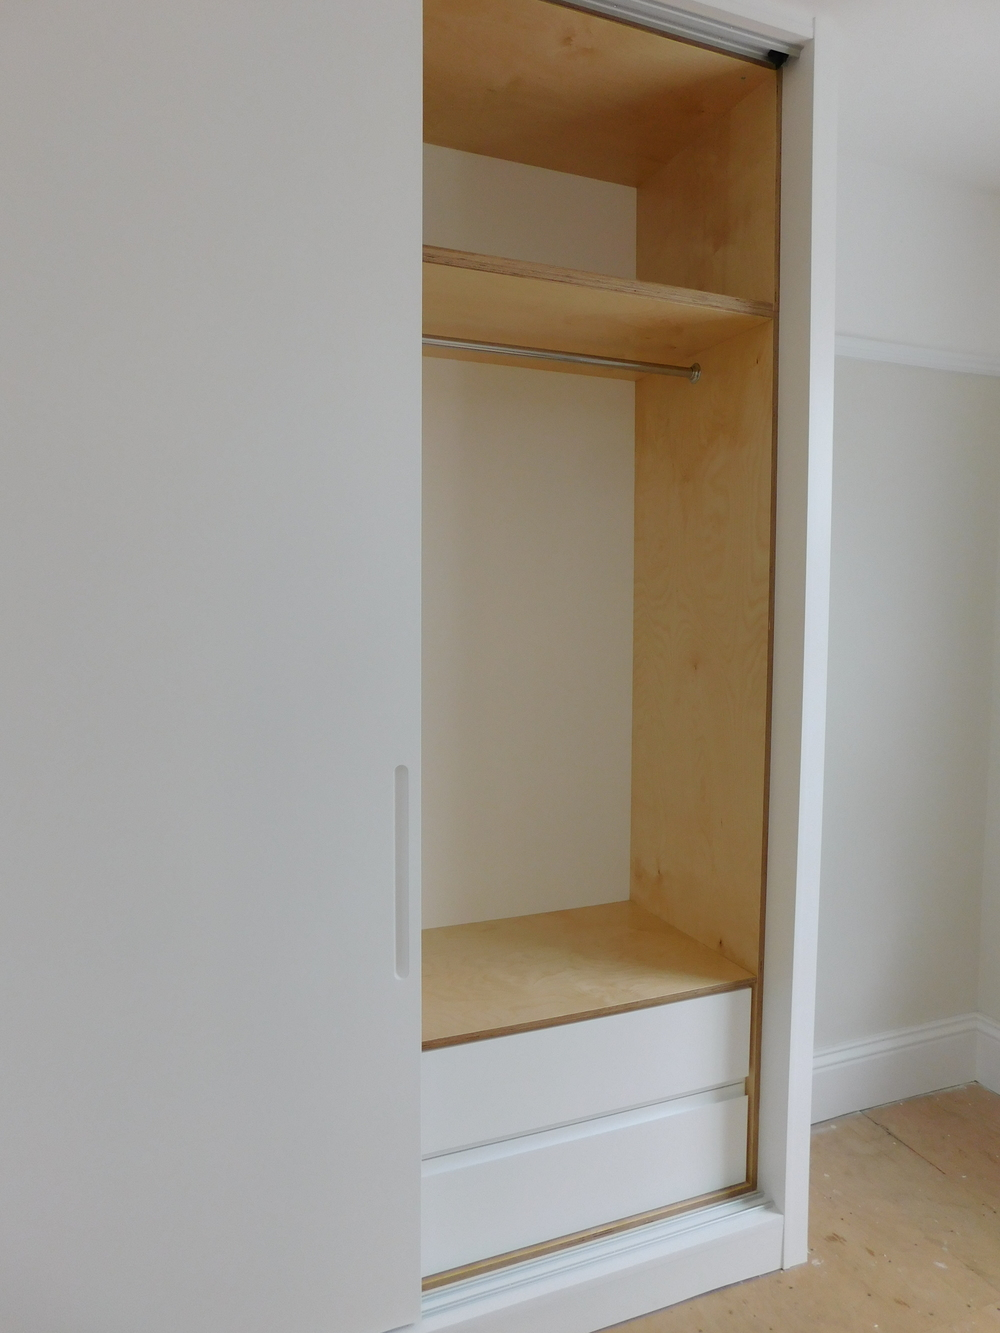 Drawer set behind sliding doors